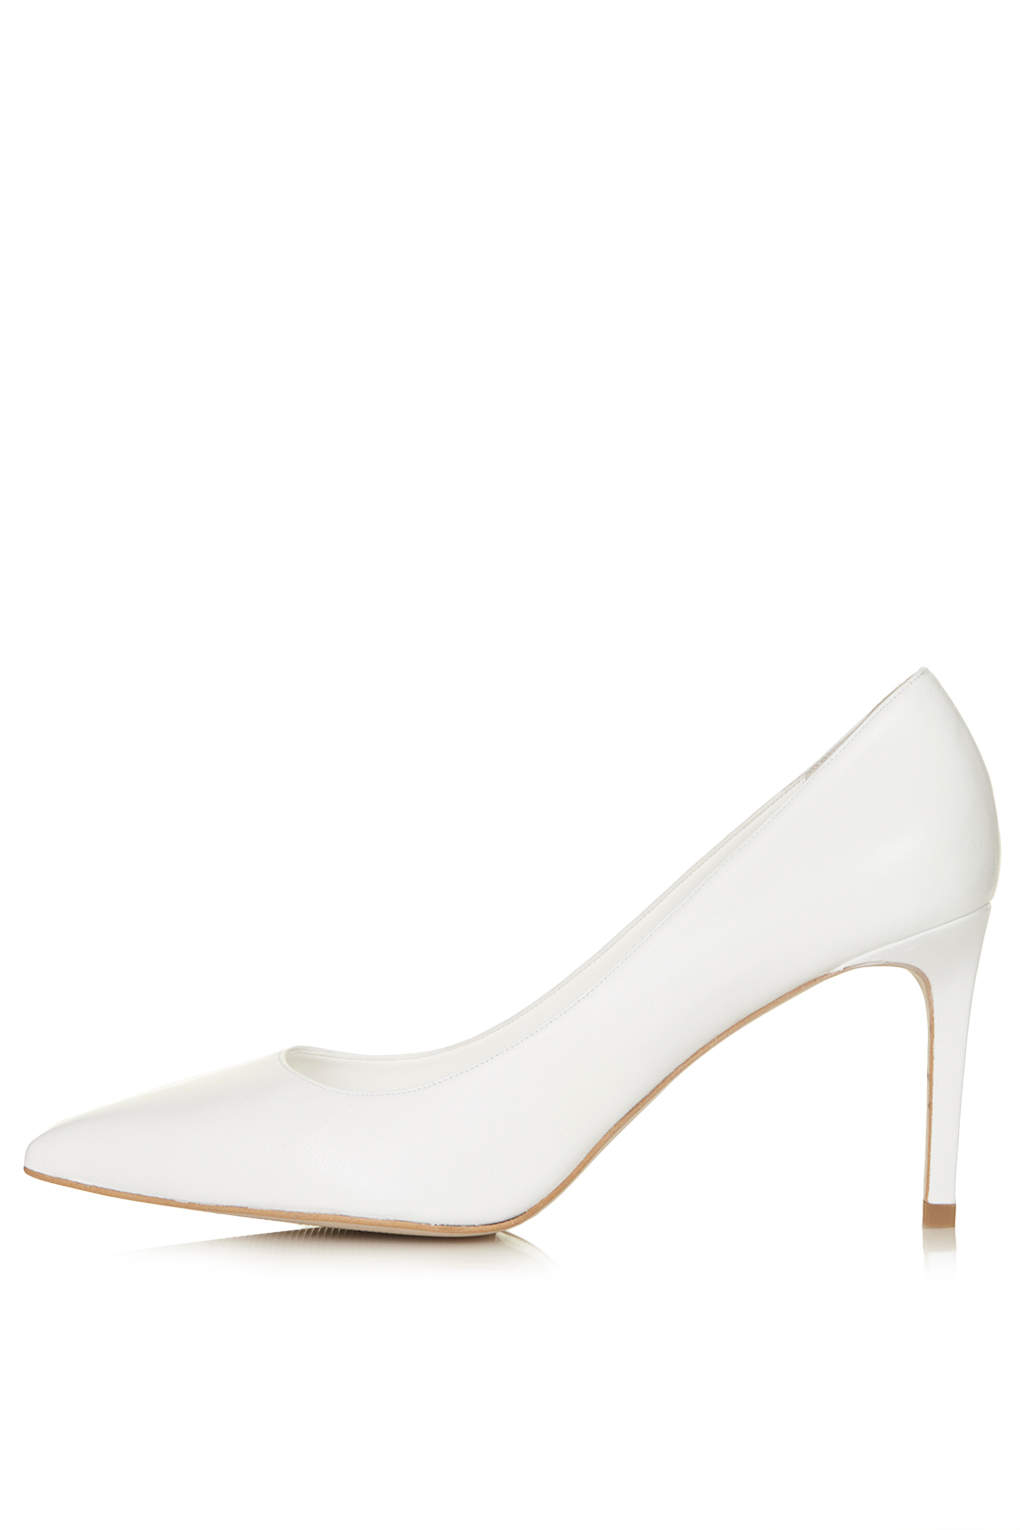 Lyst - Topshop Golden Mid Heel Court Shoes in White